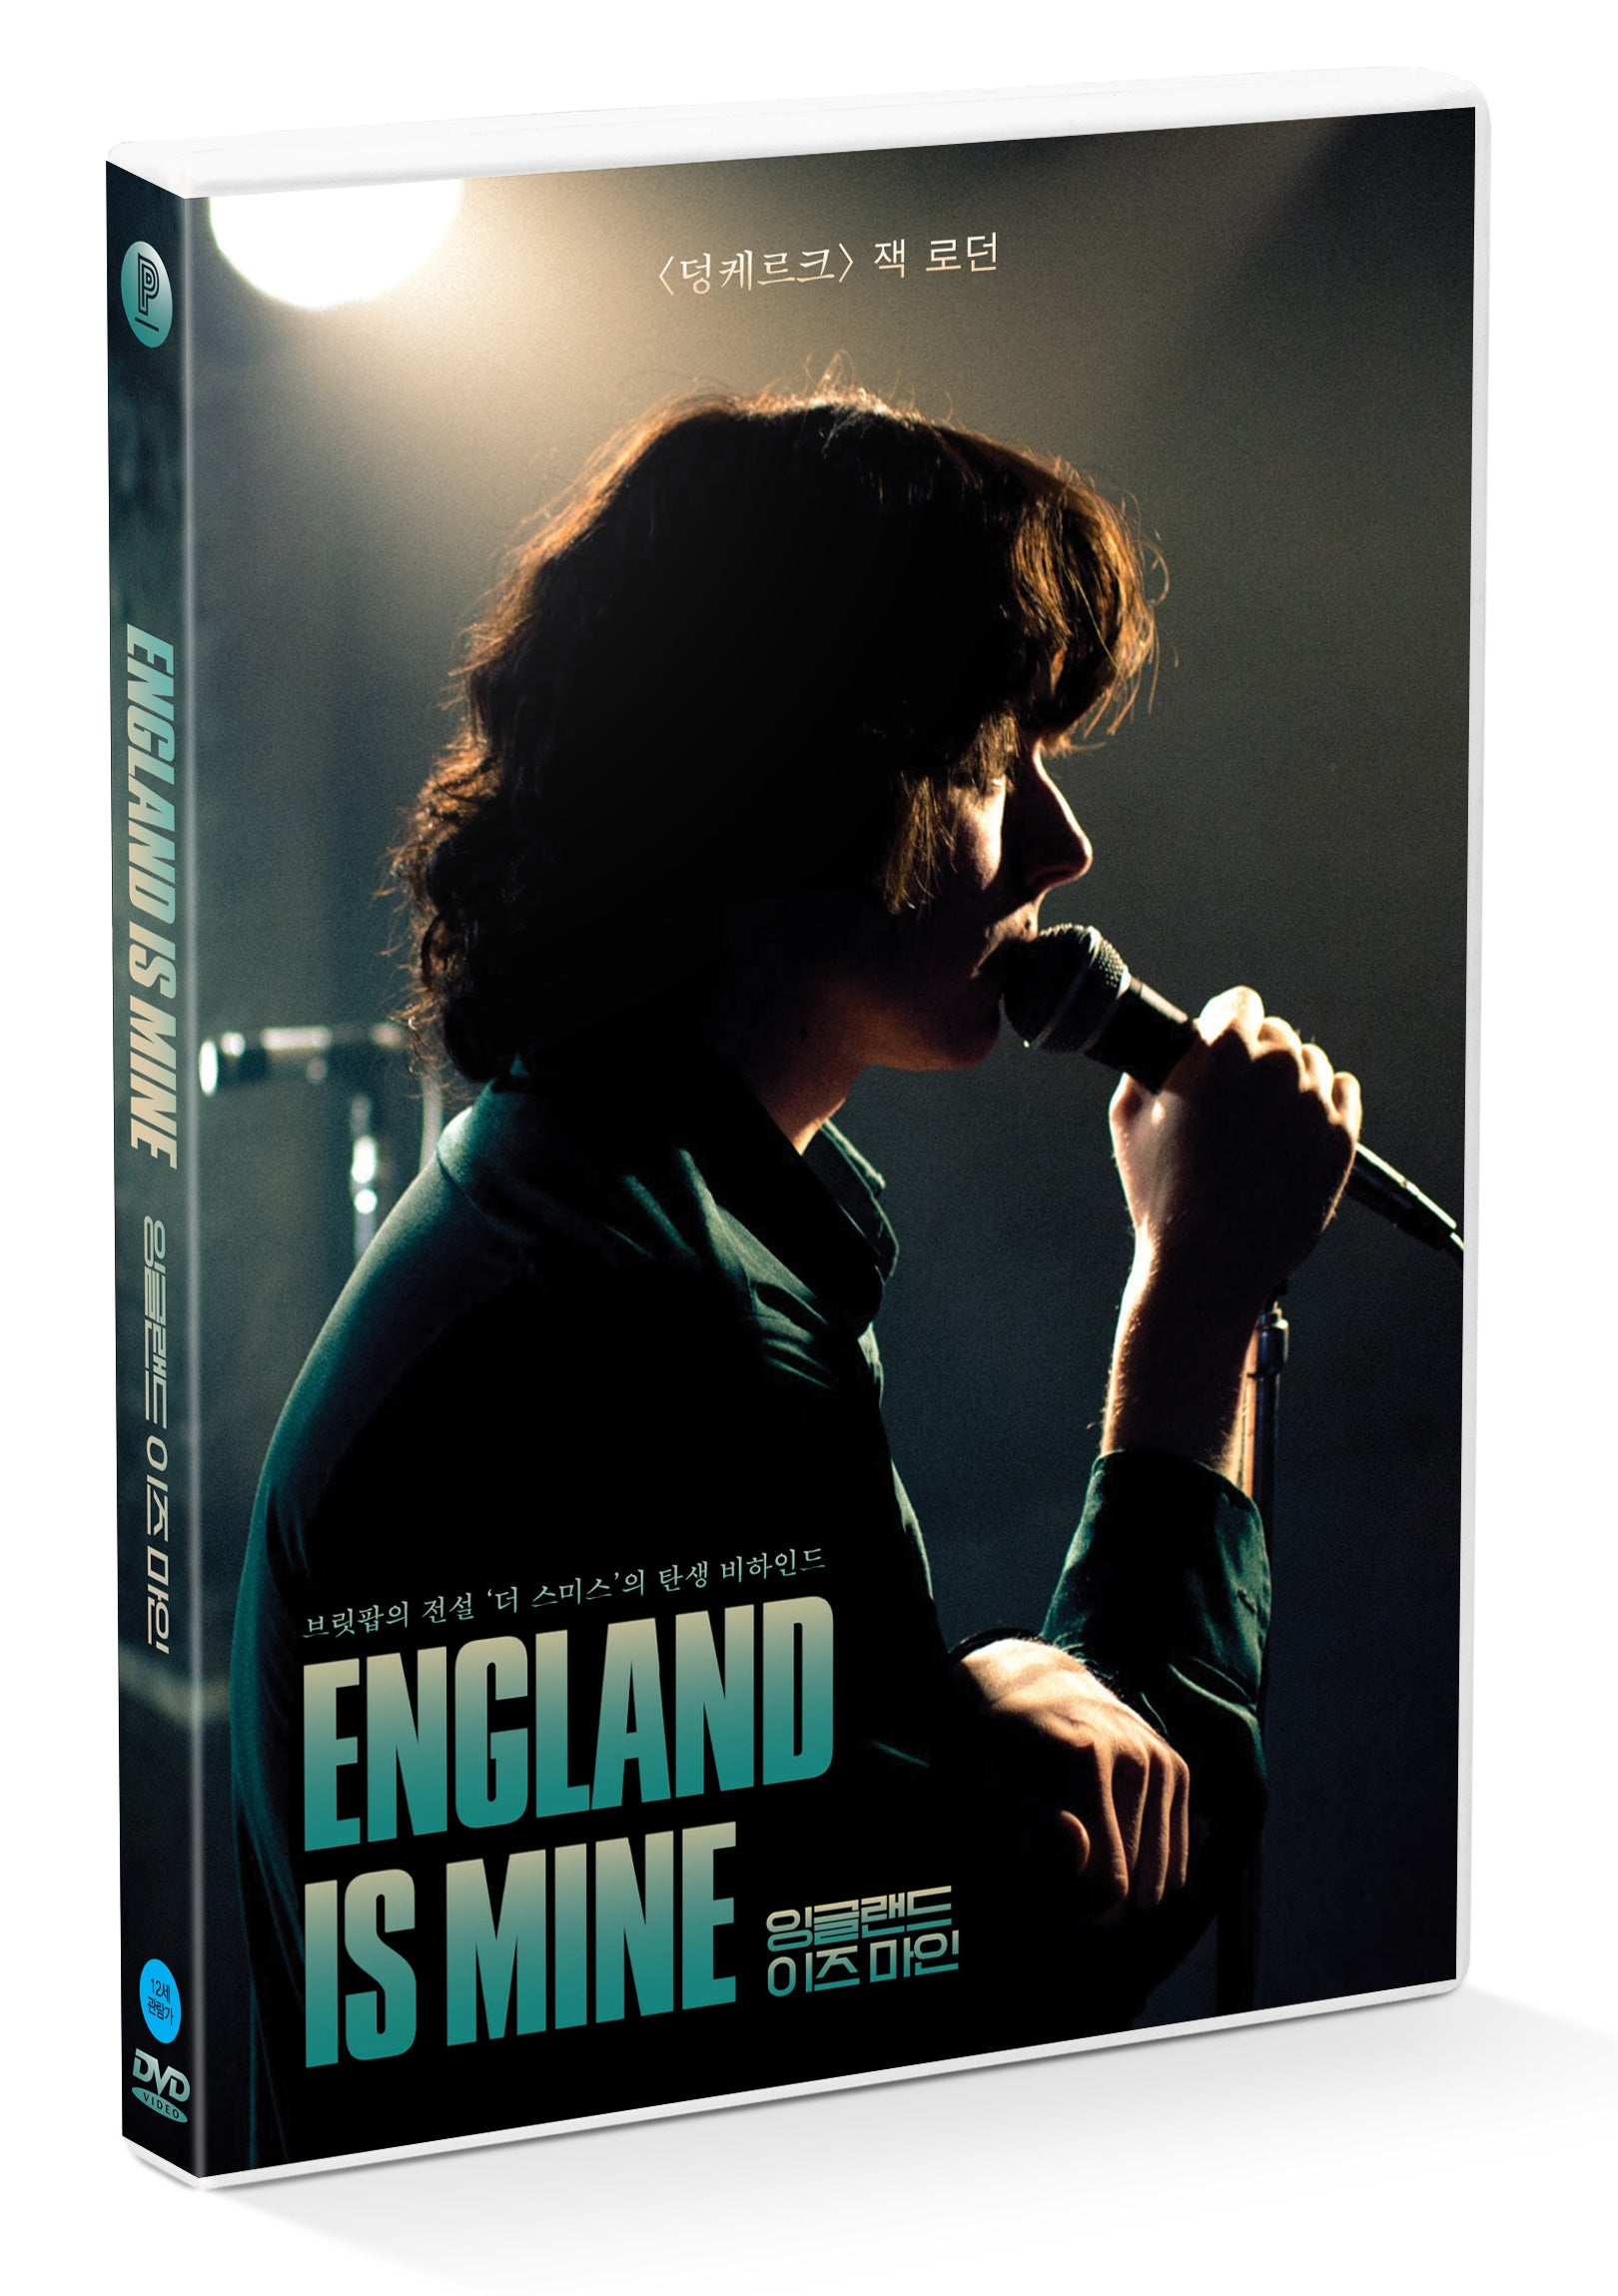 ENGLAND IS MINE DVD